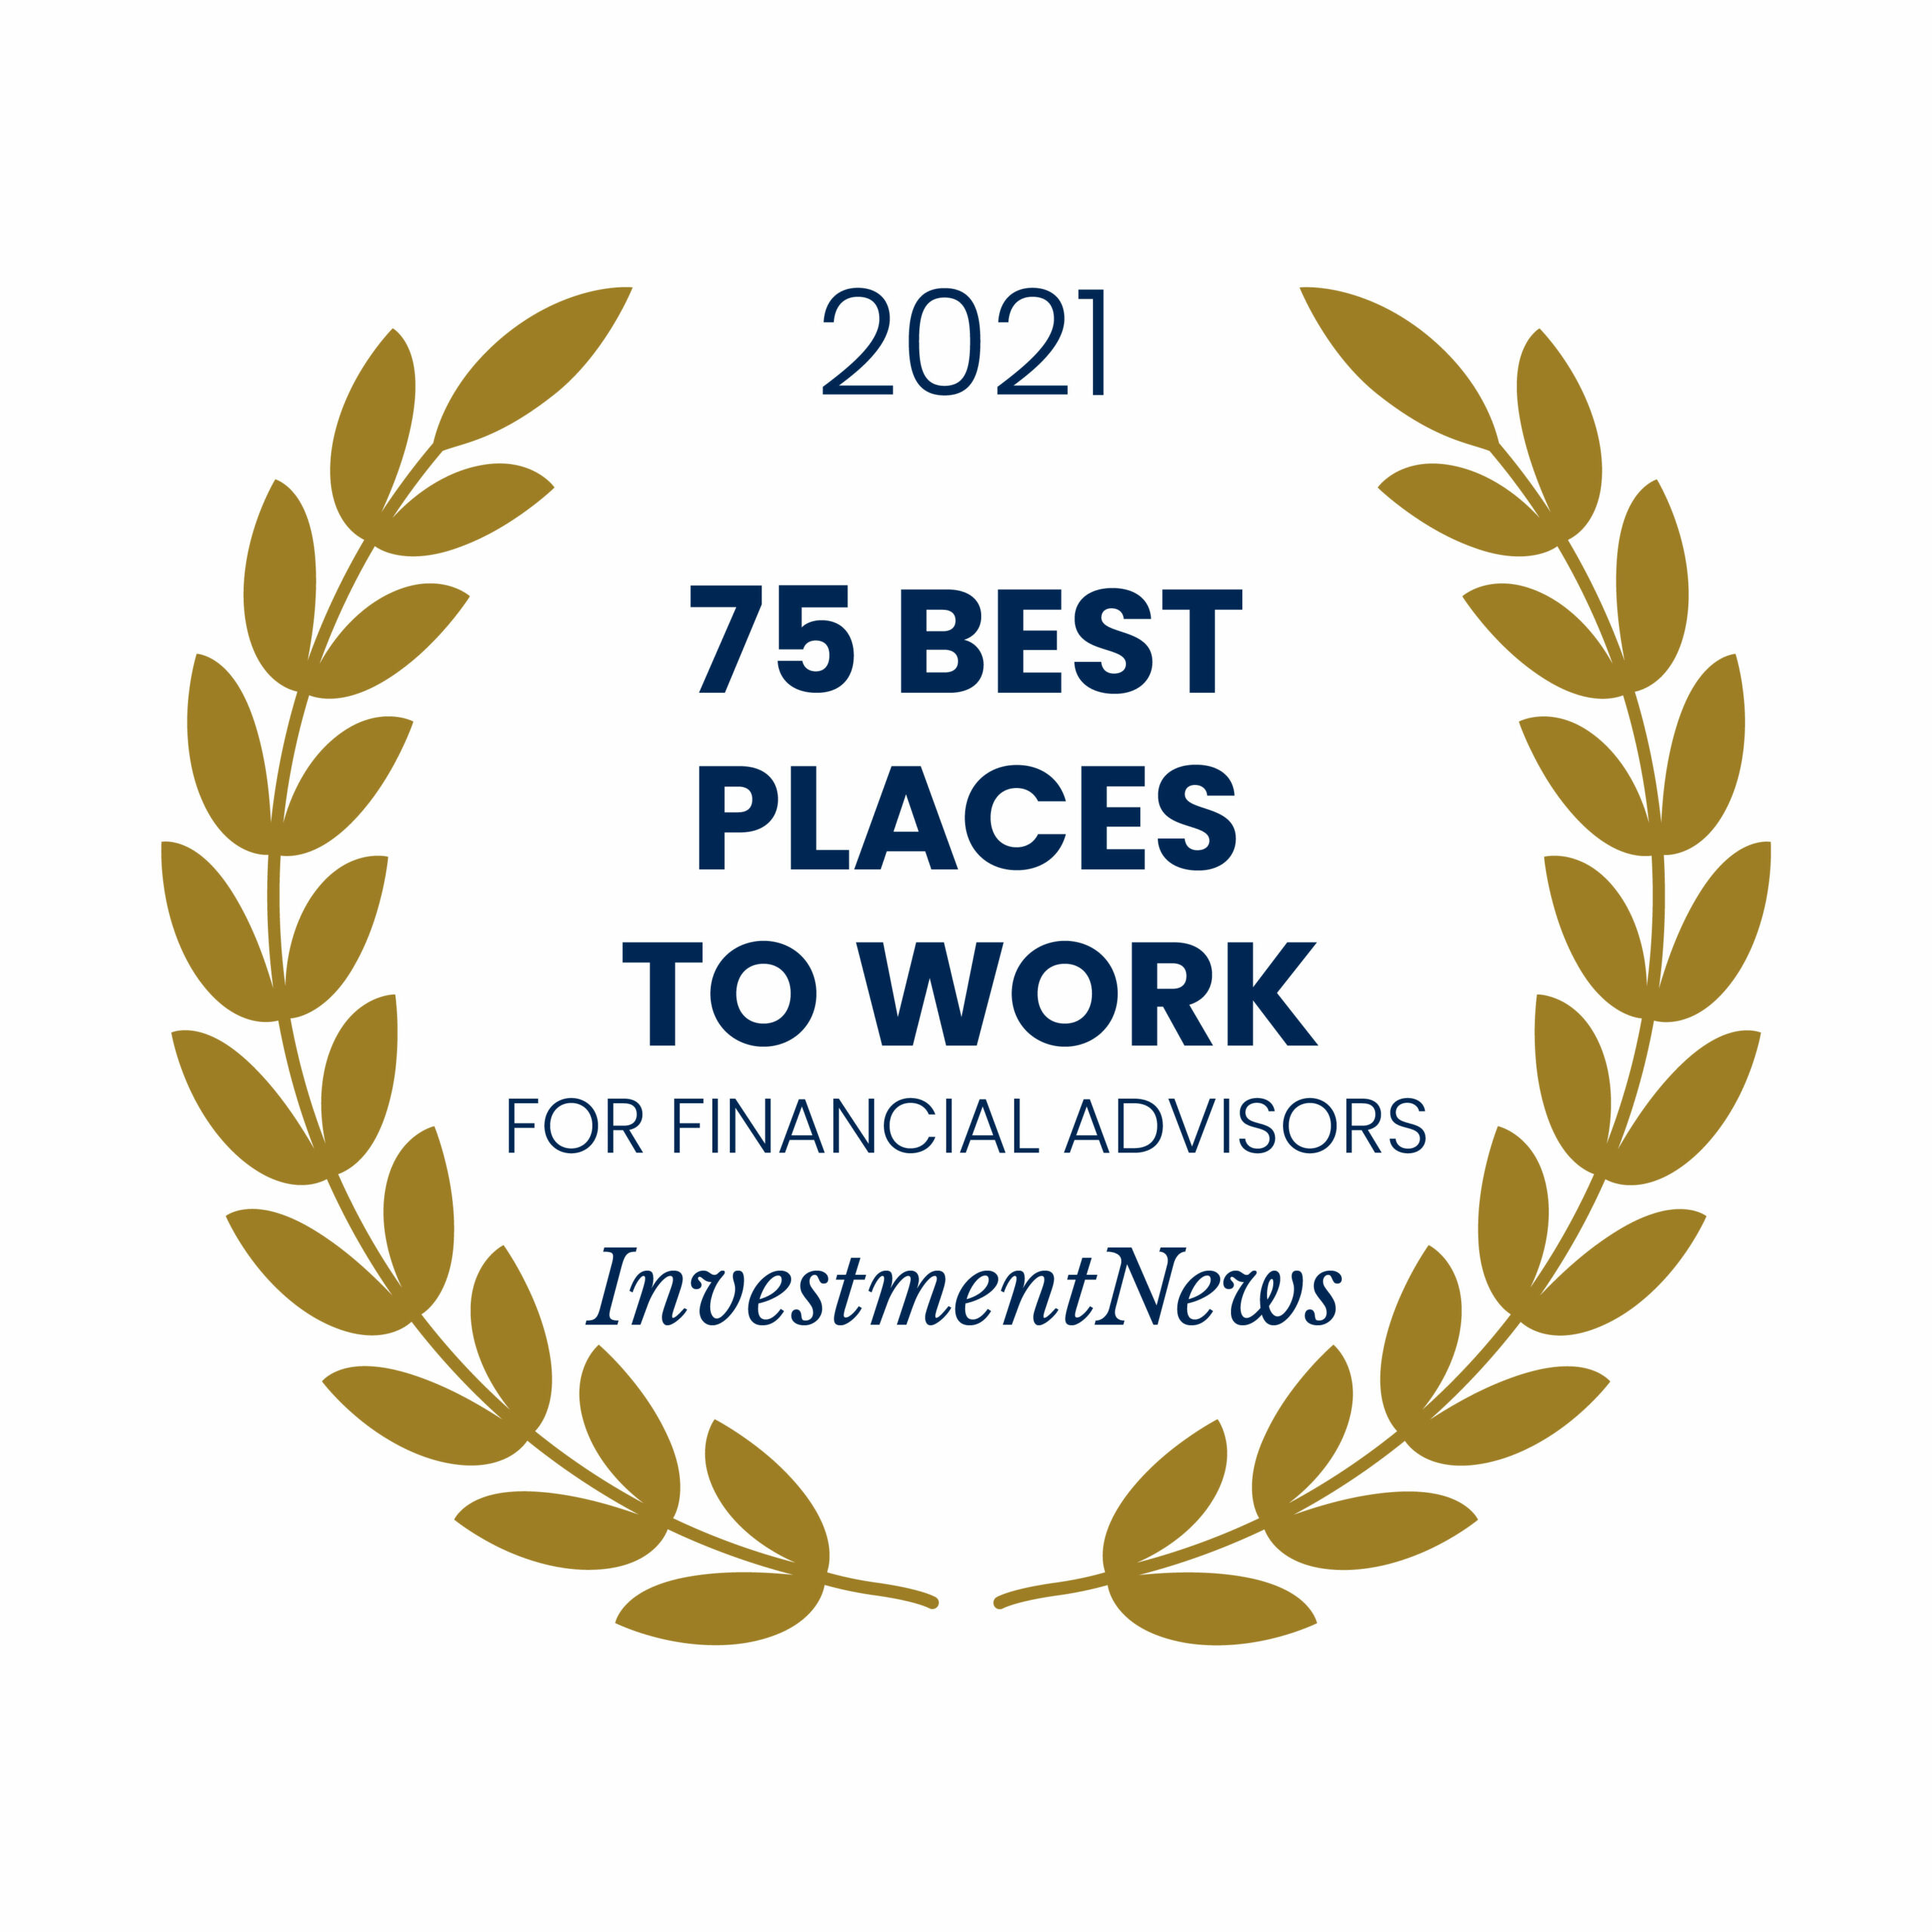 Award Emblem for Investment News 75 Best Places to Work for Financial Advisors